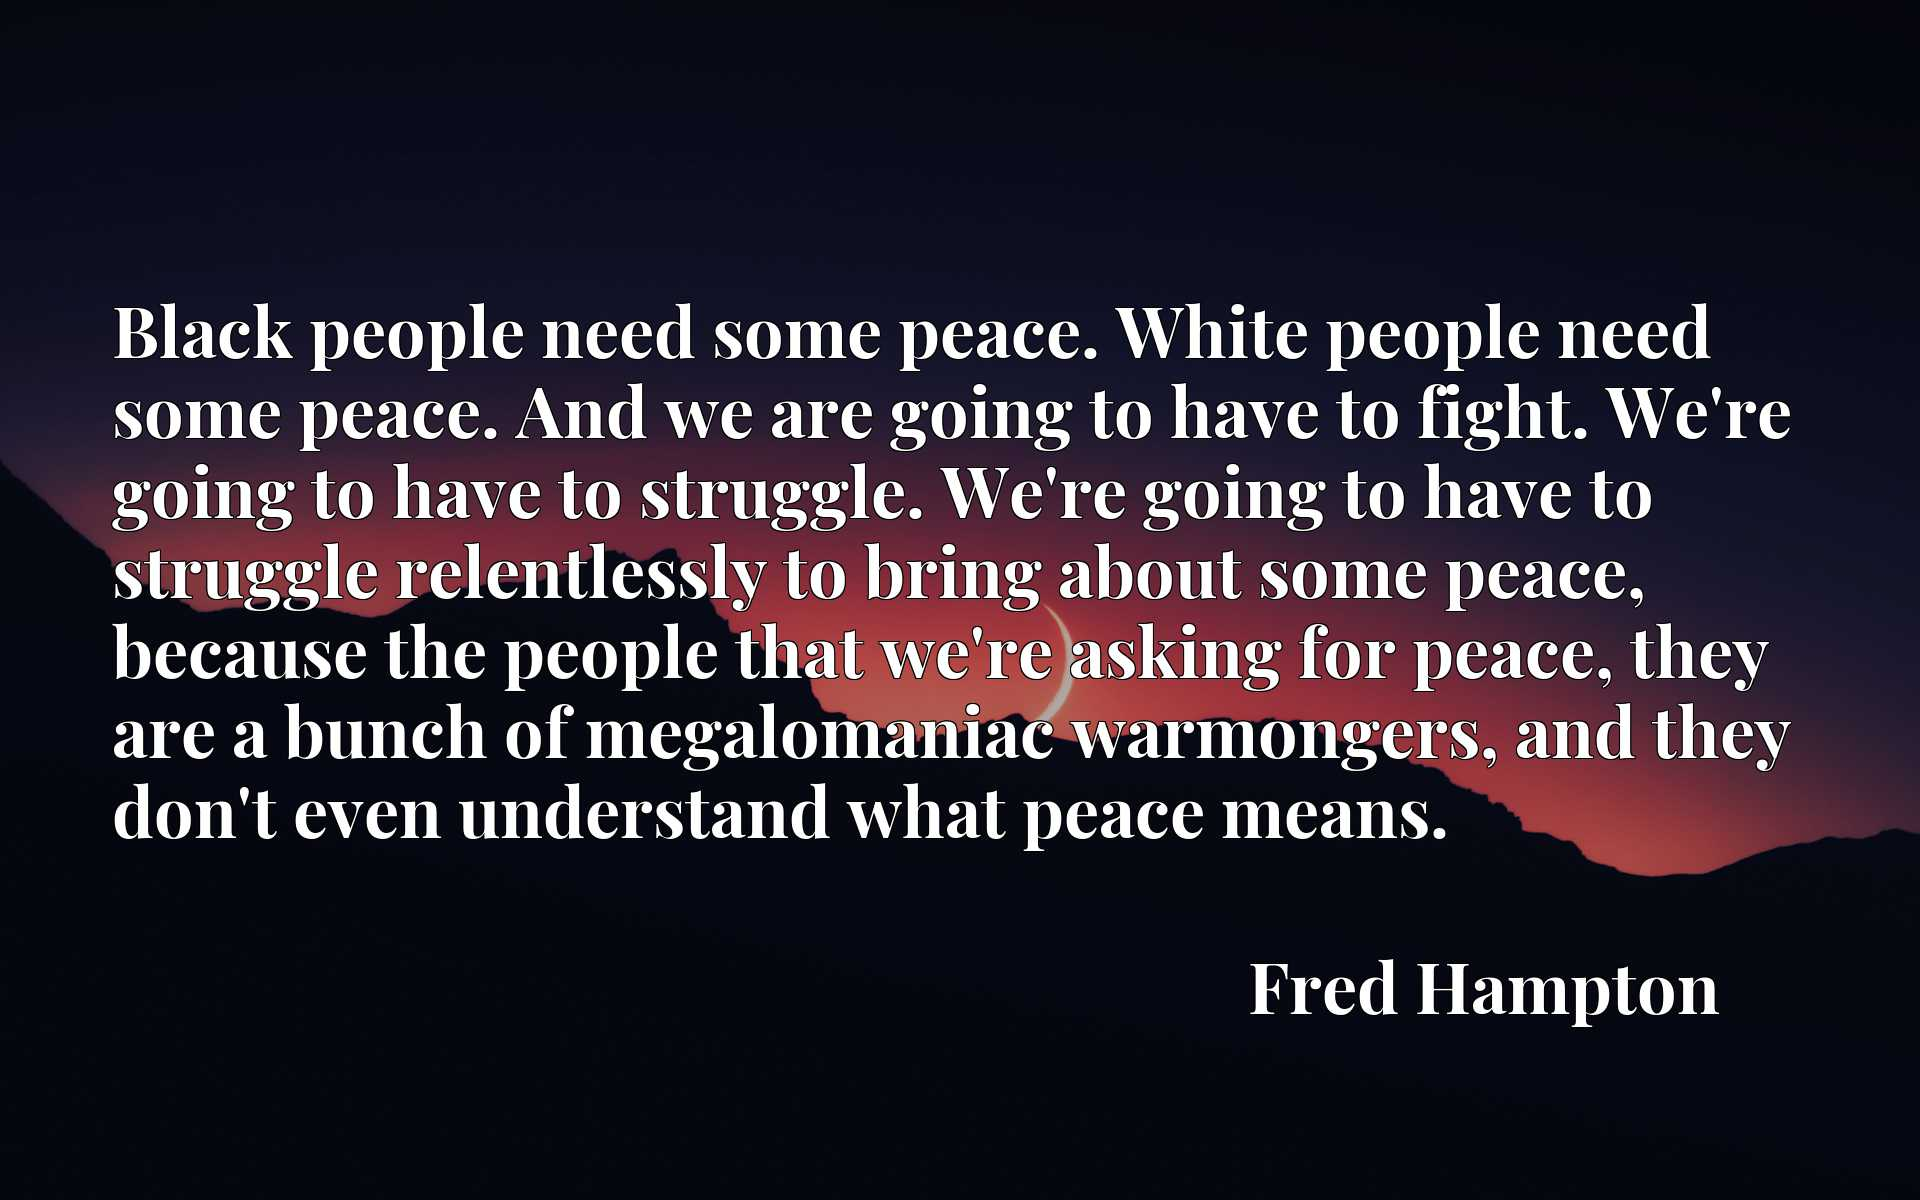 Black people need some peace. White people need some peace. And we are going to have to fight. We're going to have to struggle. We're going to have to struggle relentlessly to bring about some peace, because the people that we're asking for peace, they are a bunch of megalomaniac warmongers, and they don't even understand what peace means.